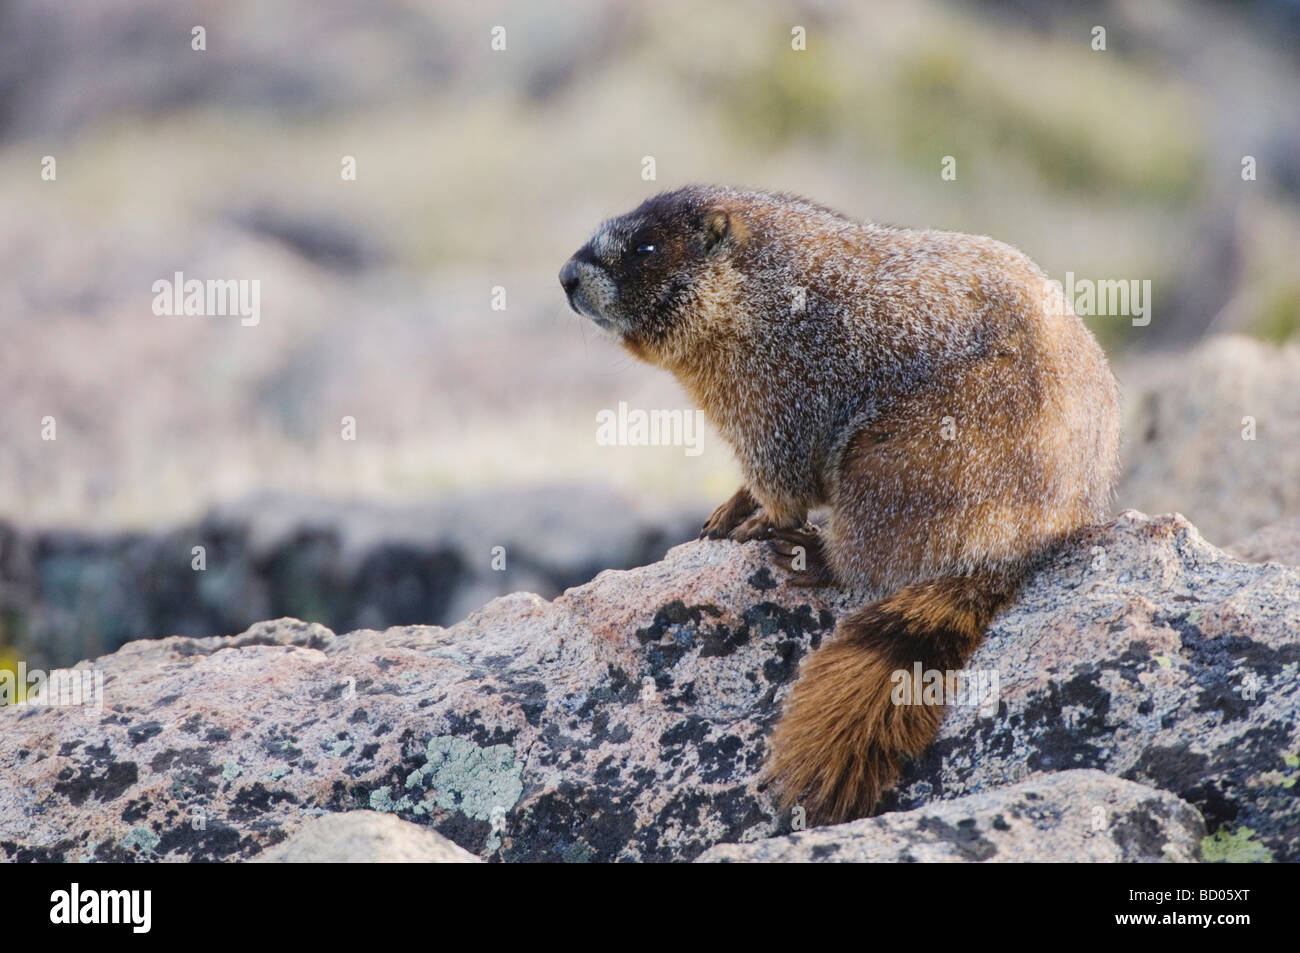 Yellow bellied Marmot Marmota flaviventris adult on rock boulder Rocky Mountain National Park Colorado USA June - Stock Image